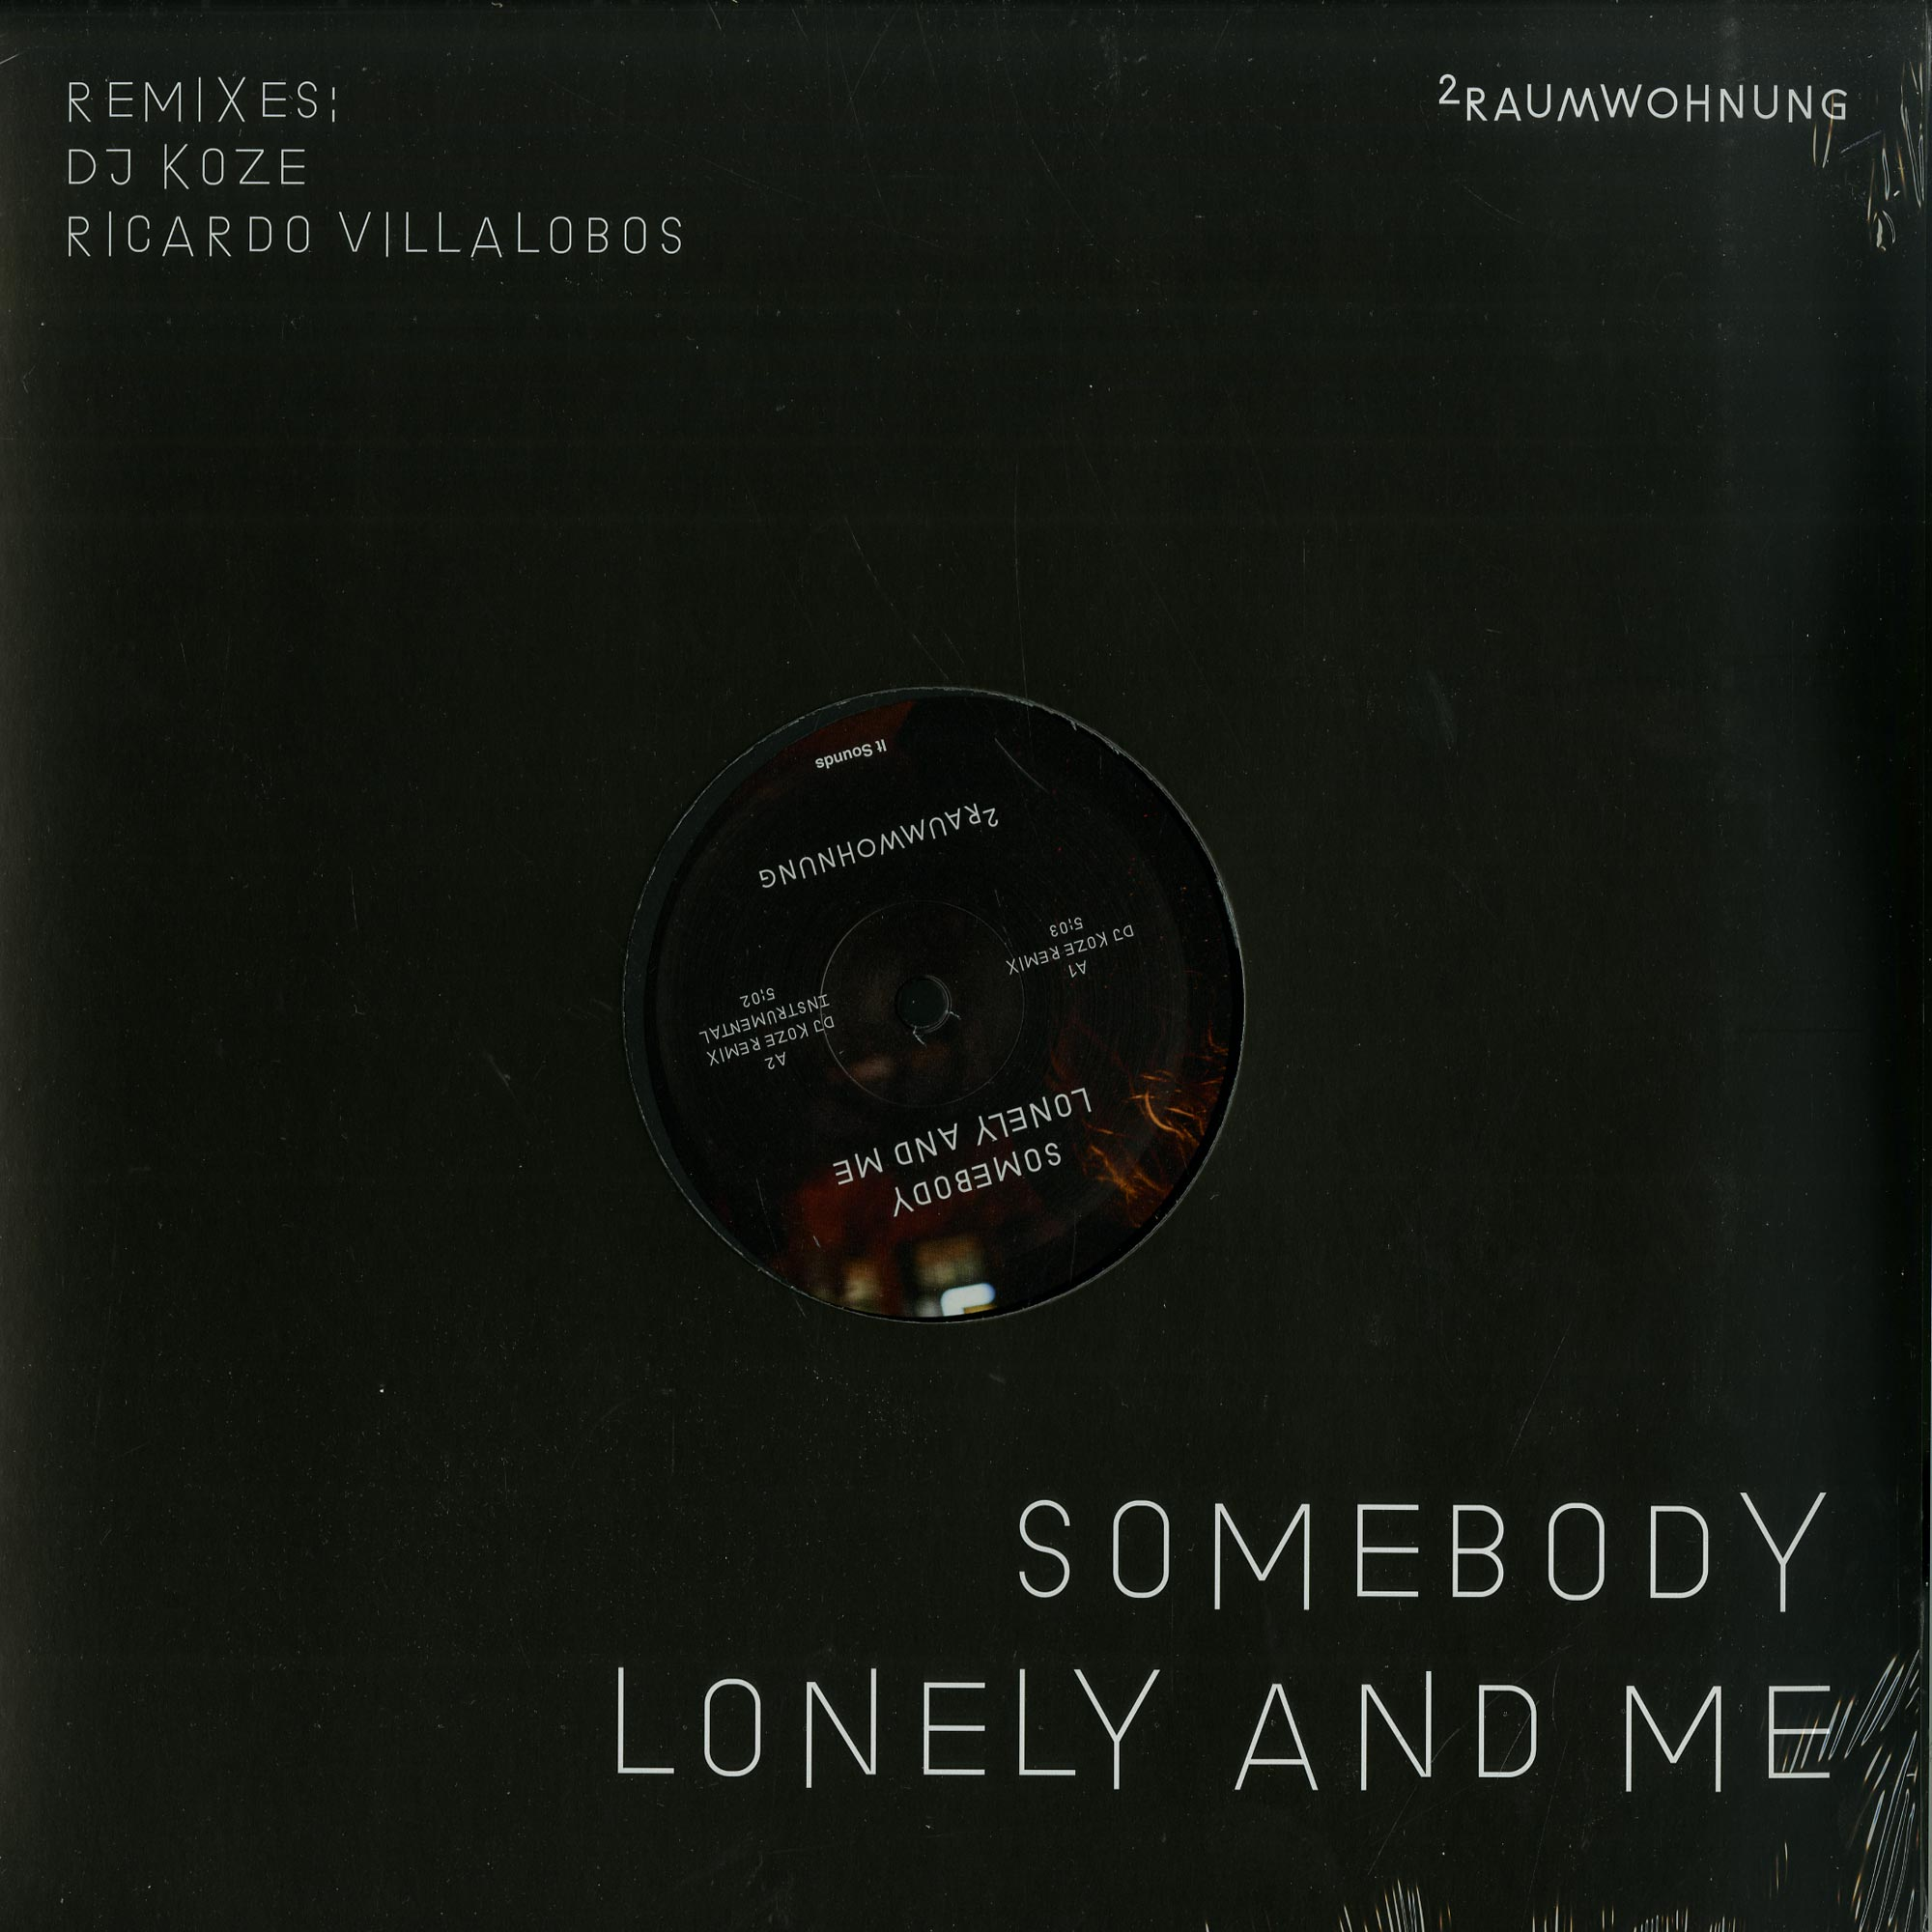 2Raumwohnung - SOMEBODY LONELY AND ME